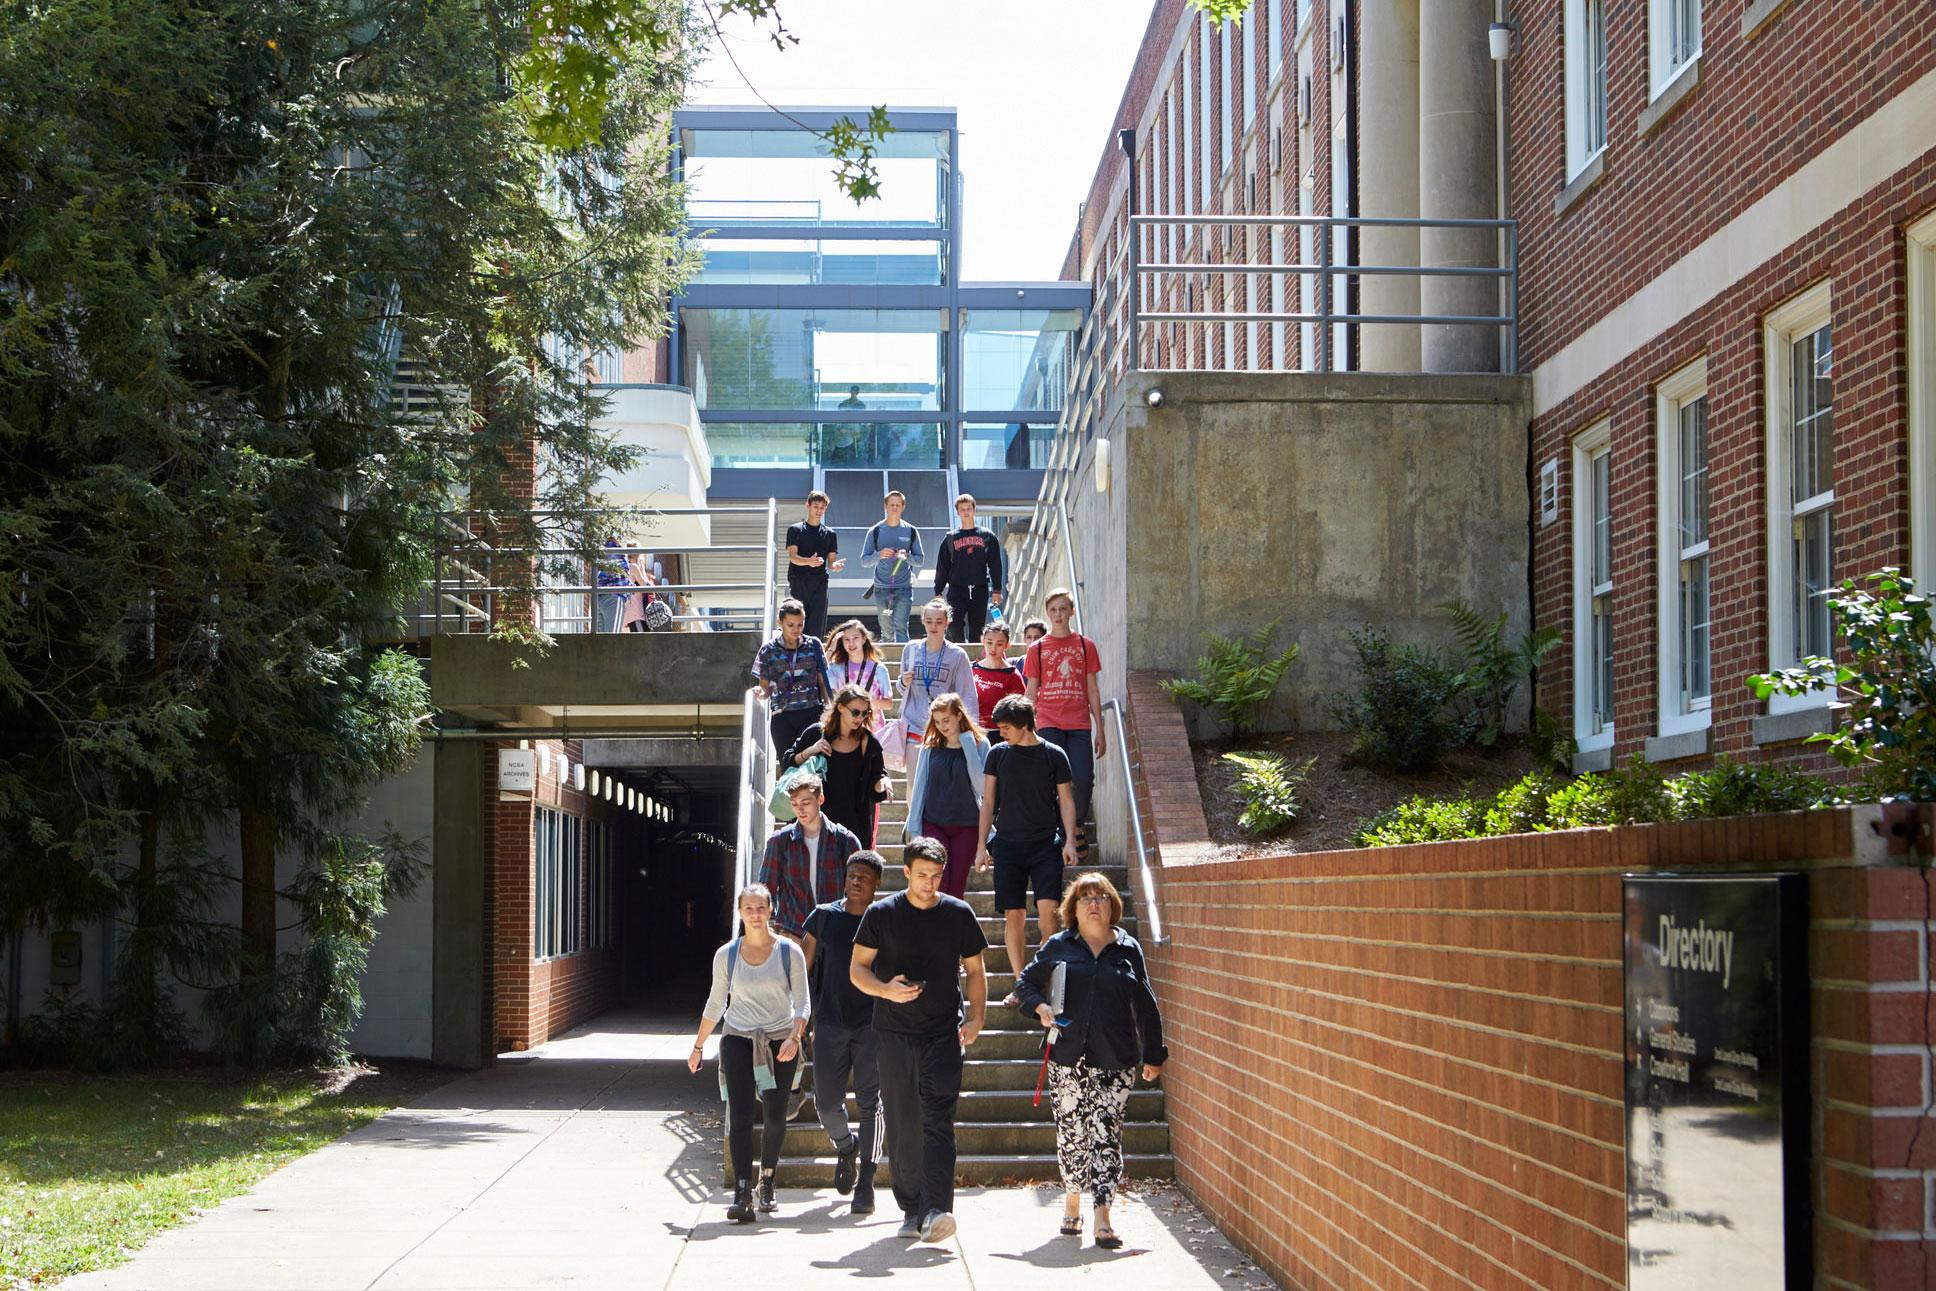 Today, the Gray Building (on the right) is connected to classrooms and studios in the Workplace Building by a series of stairwells. Photo: David Hillegas